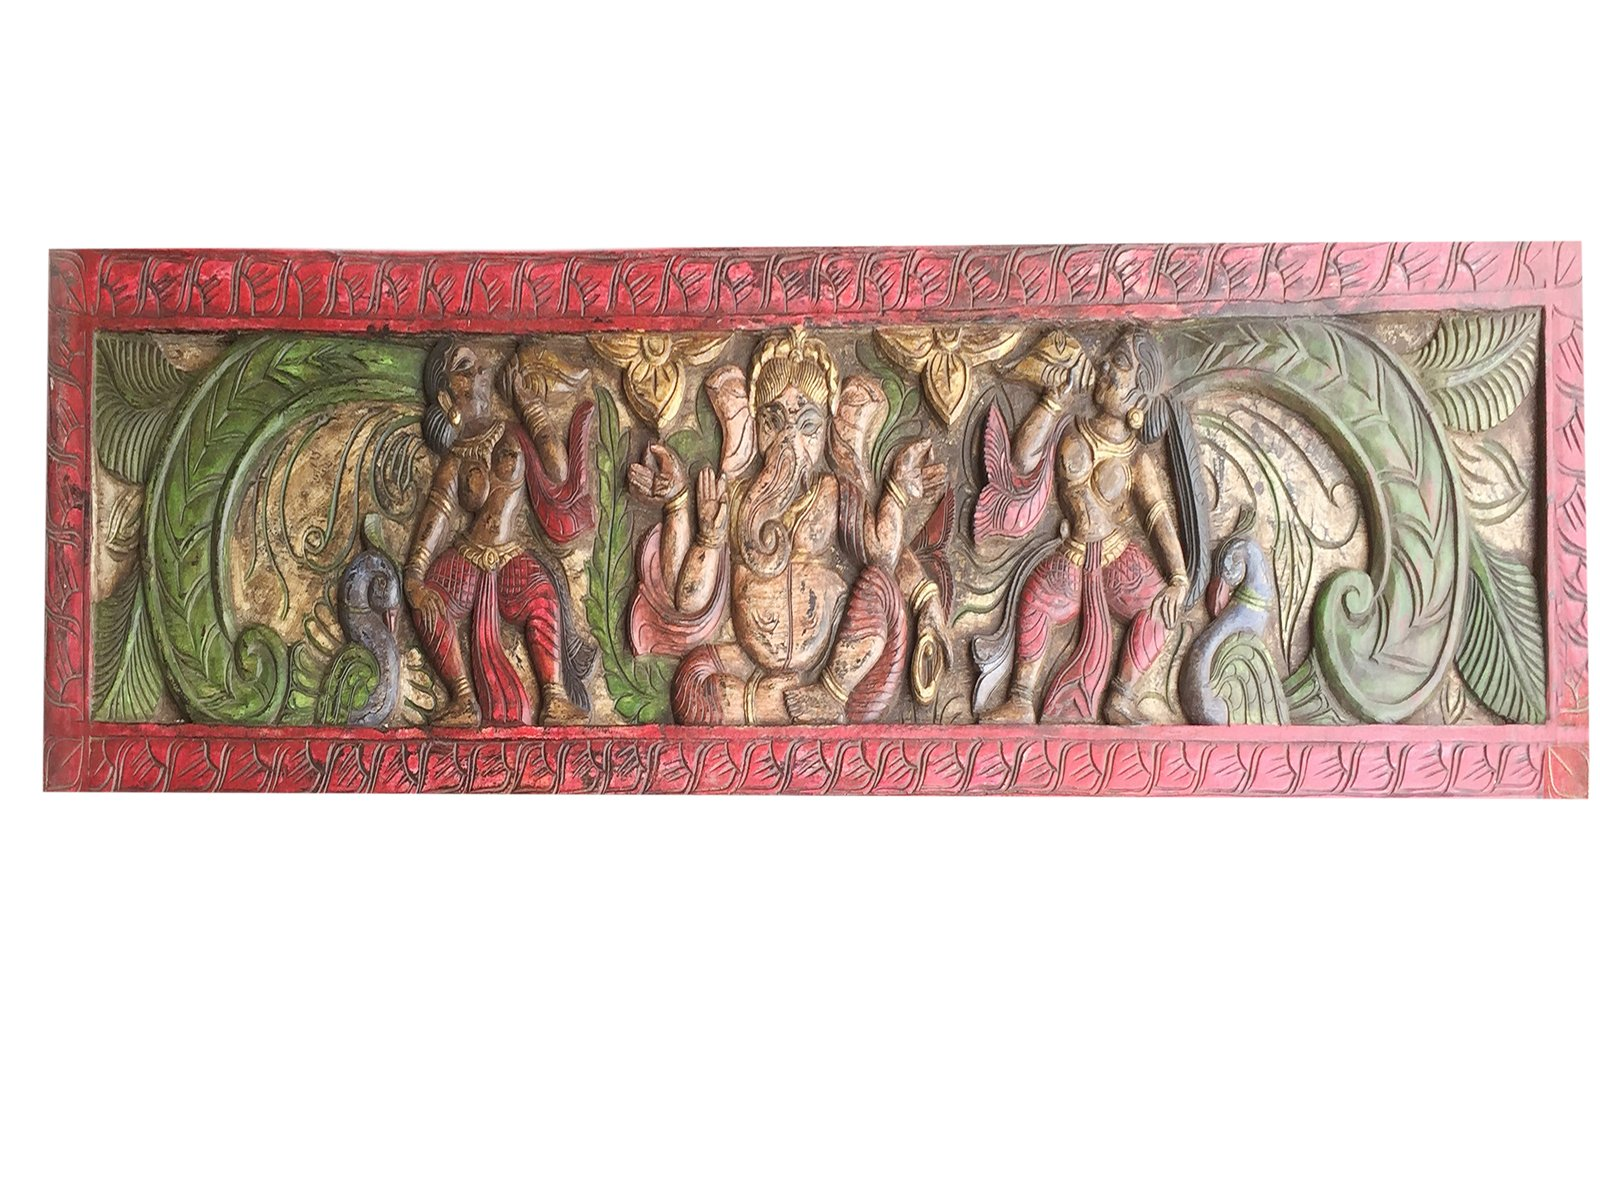 Wall Hanging Vintage Hand Carved Sitting Ganapati posture Headboard Boho Decor